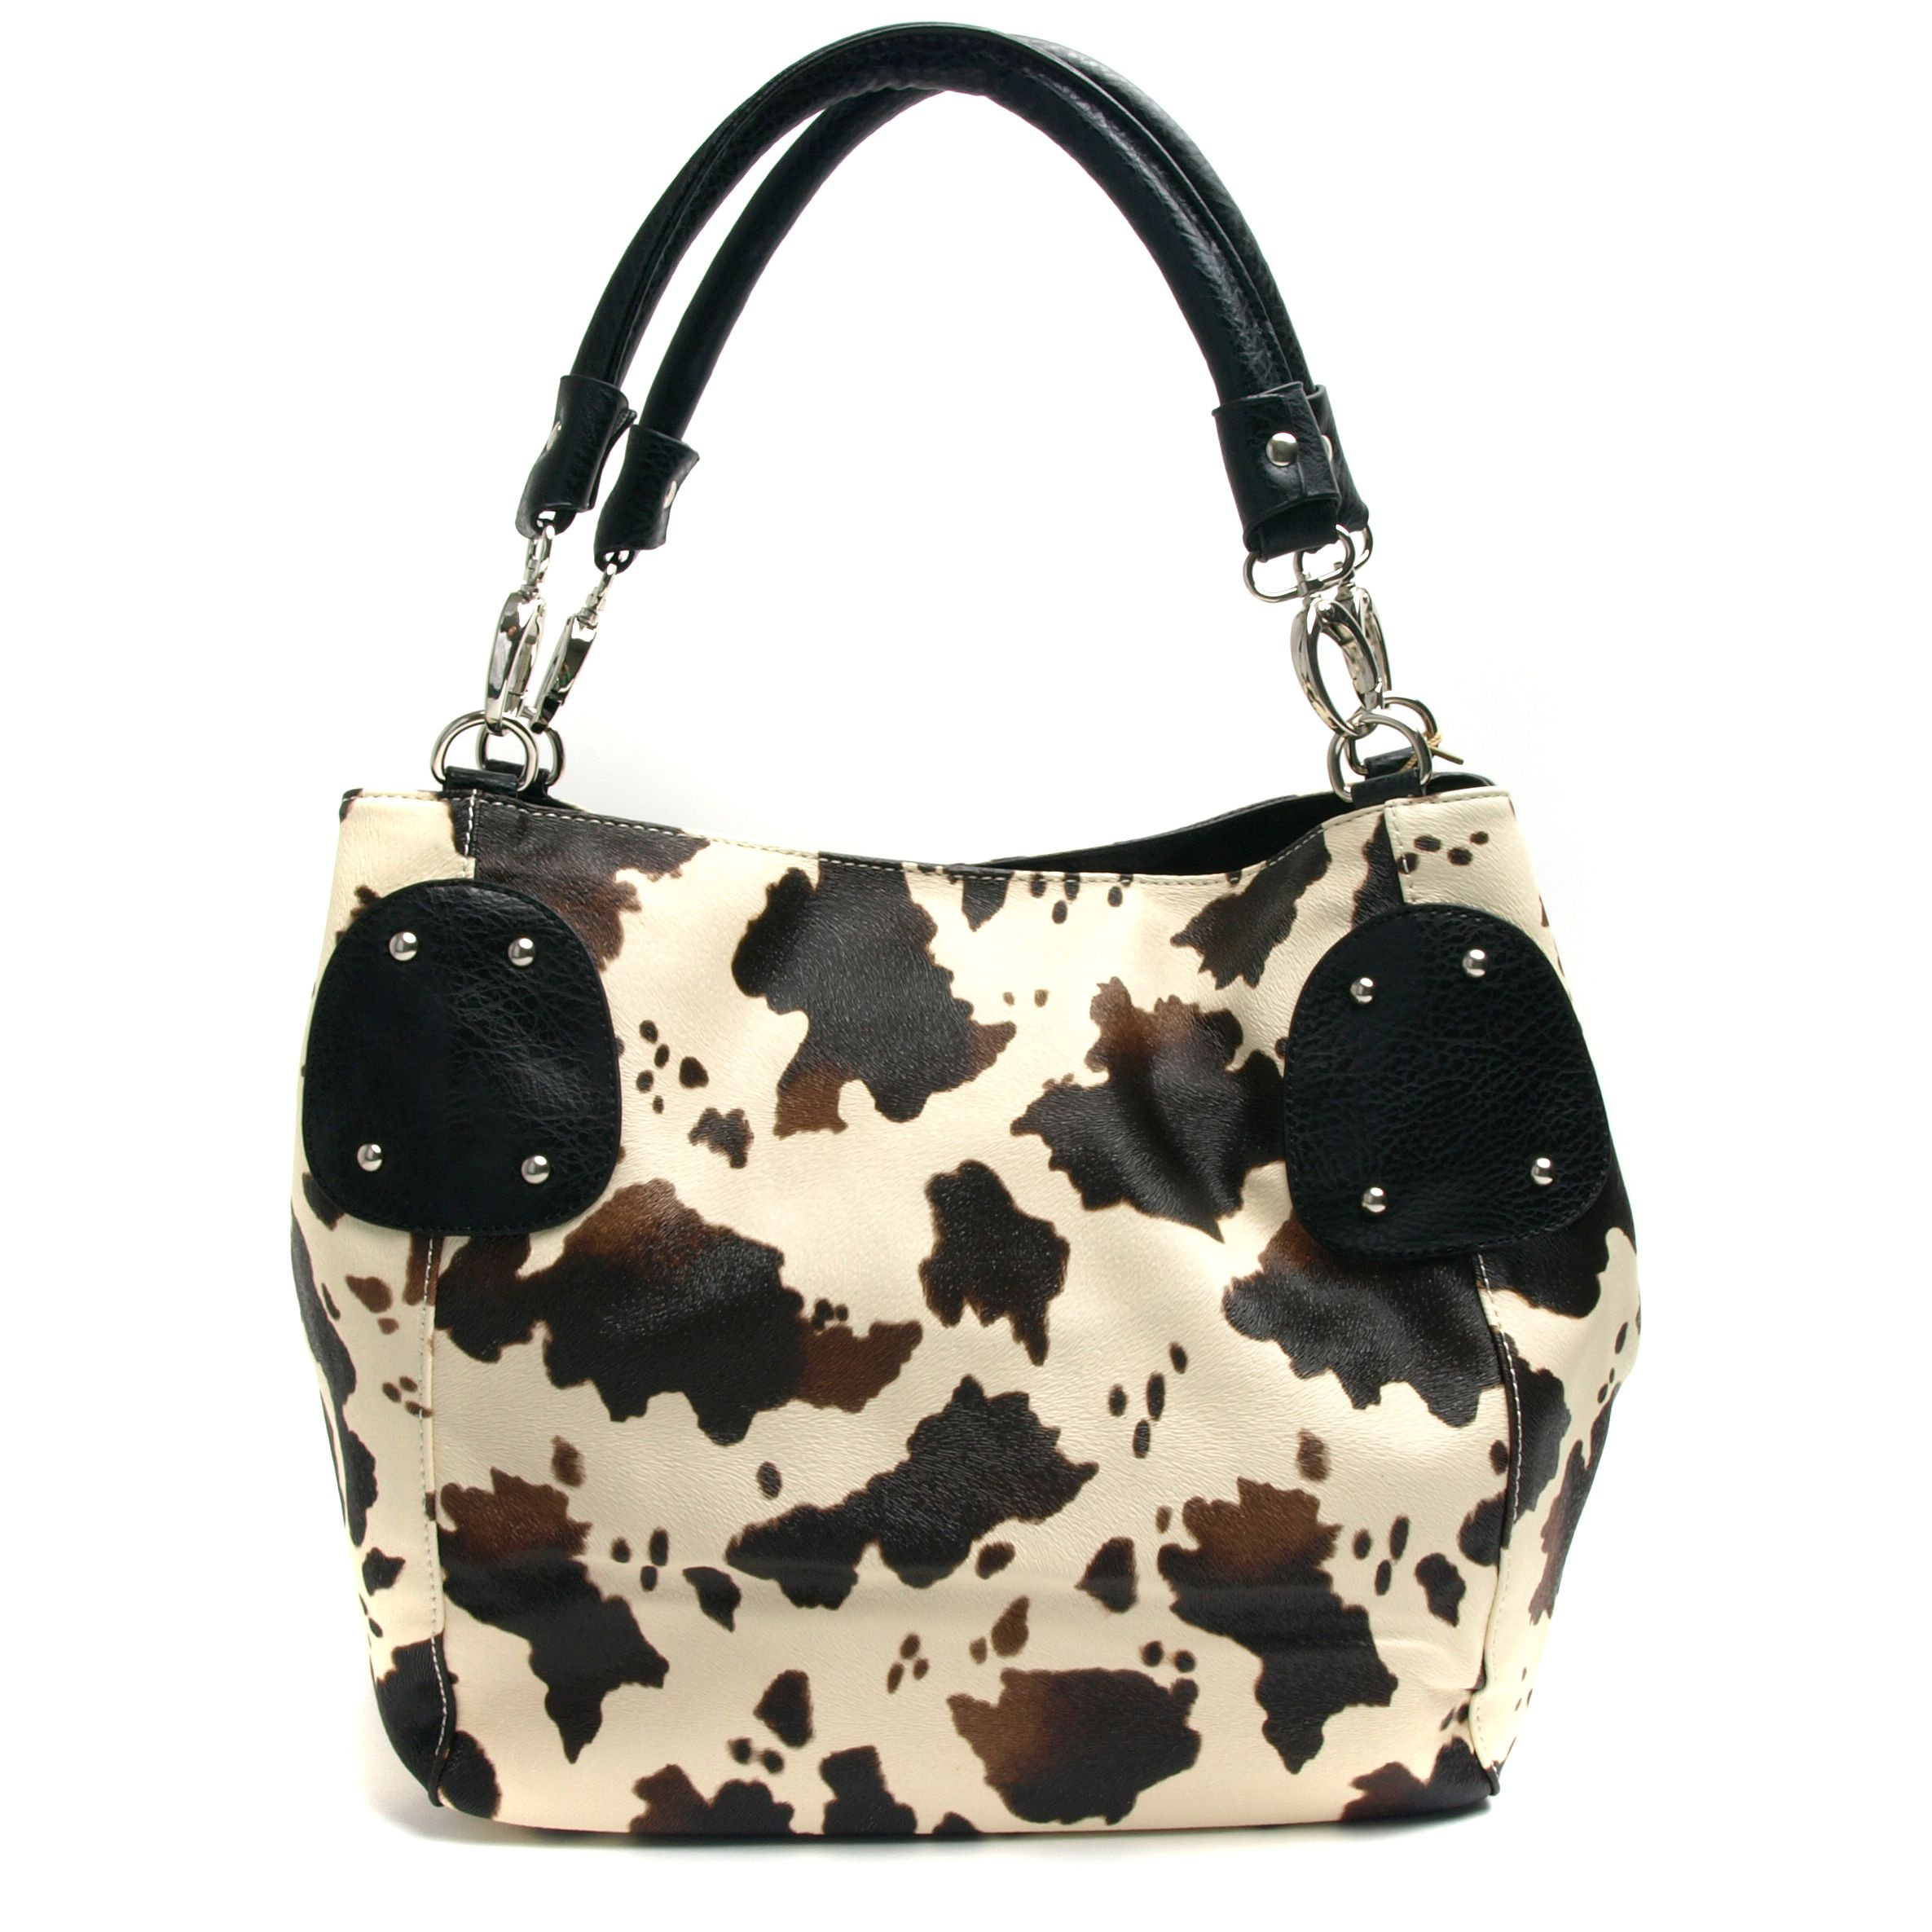 I Have Been Trying To Find A Cow Print Purse Forever